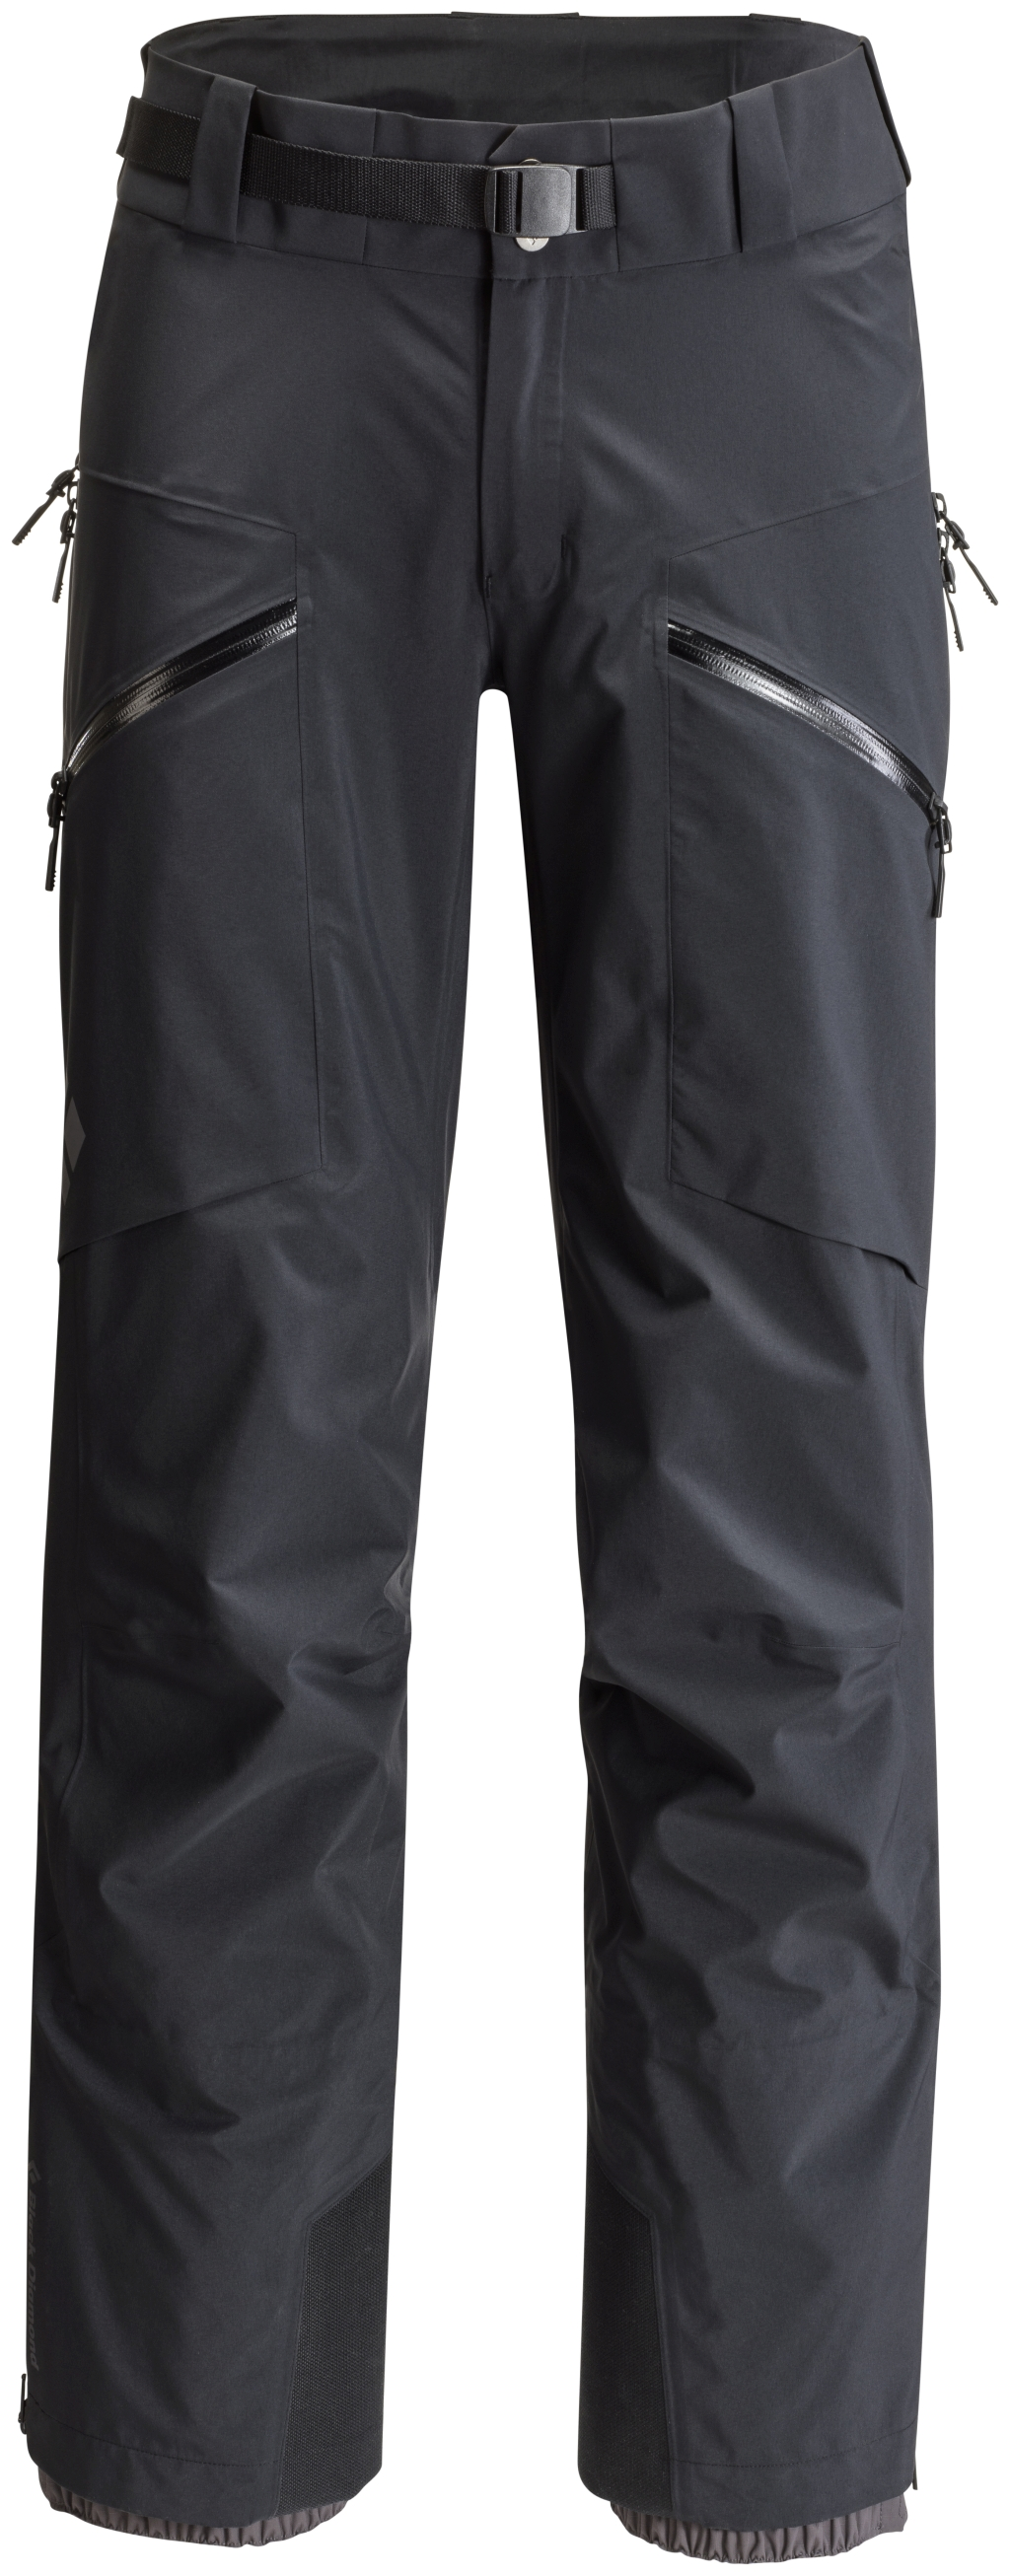 Black Diamond Sharp End Pants Black-30